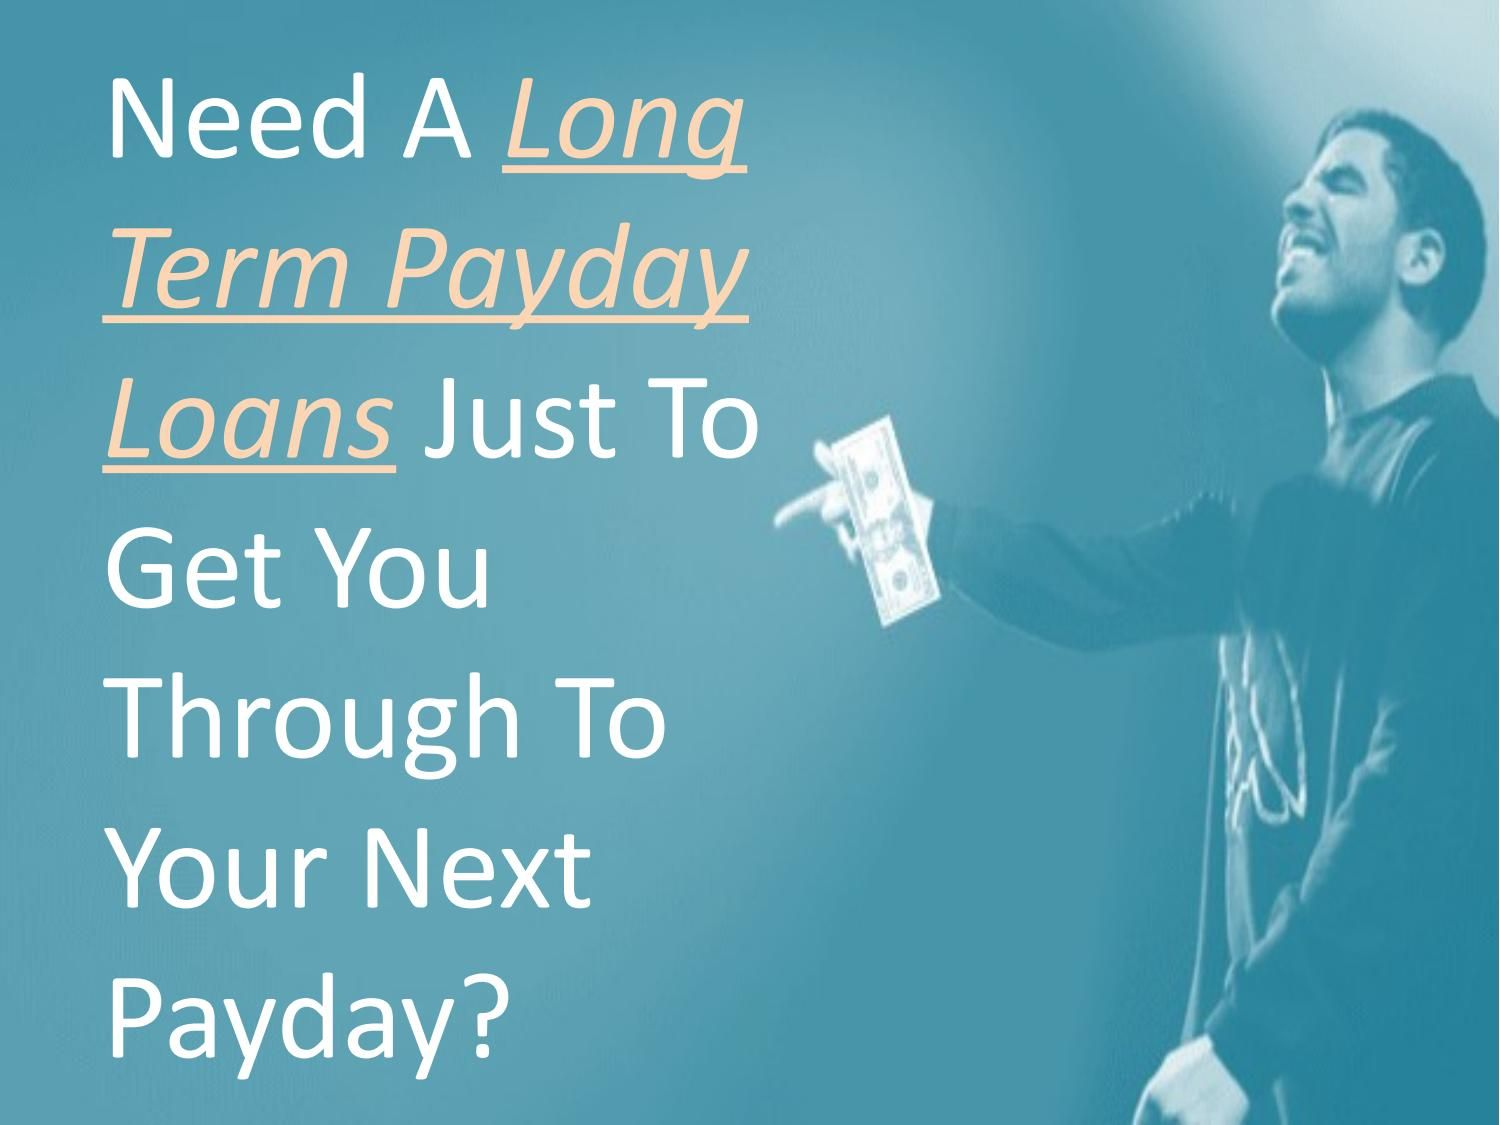 Payday loans in kingsport tennessee picture 6